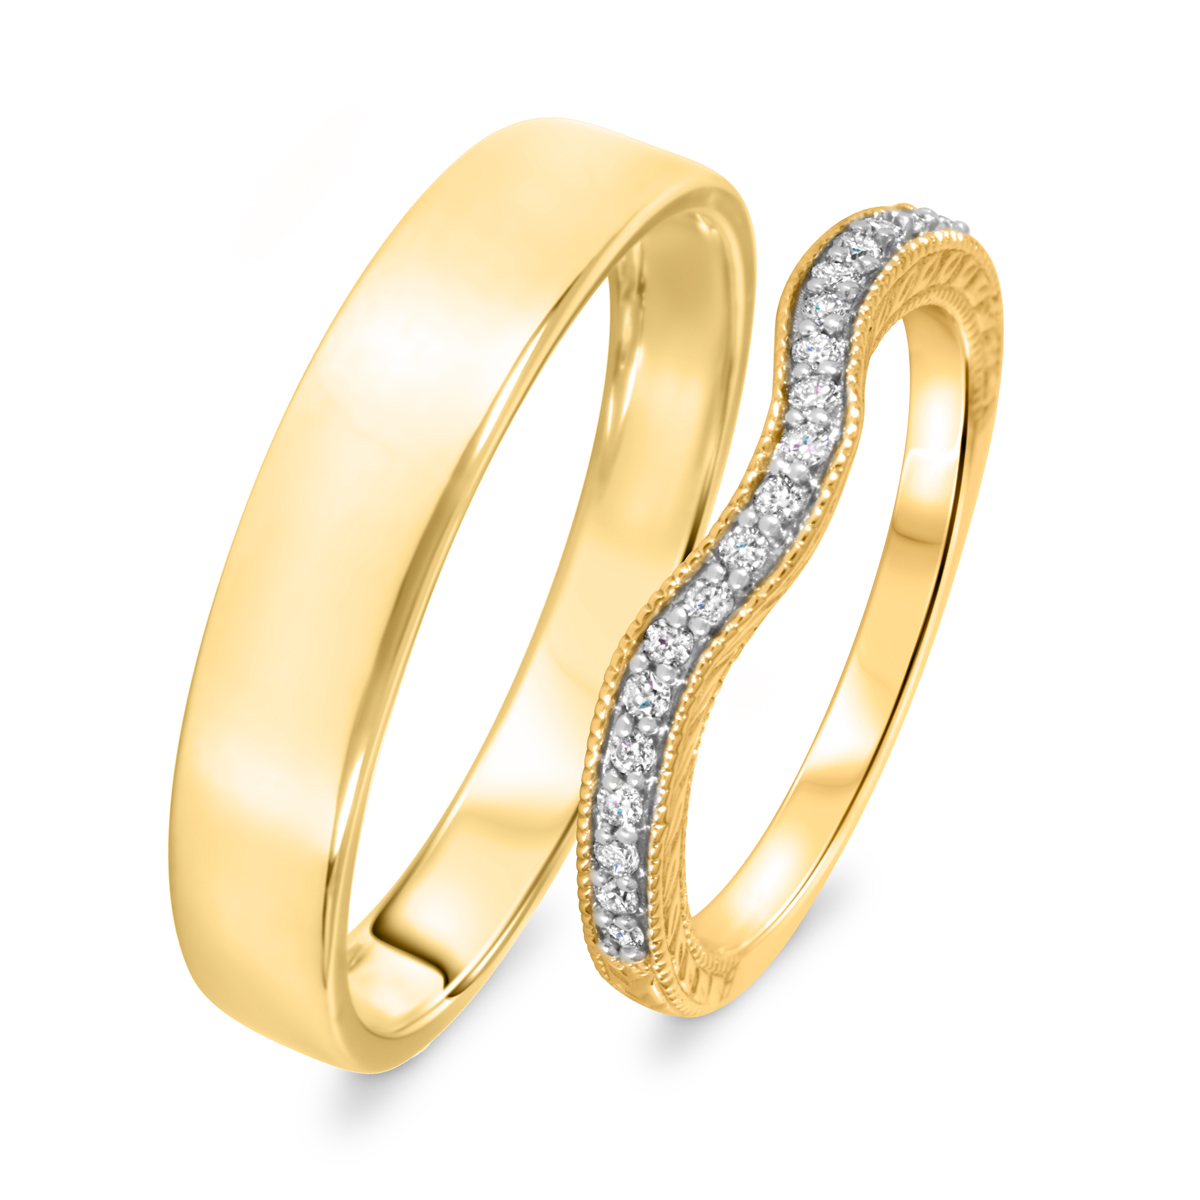 1/6 Carat T.W. Round Cut Diamond His And Hers Wedding Band Set 14K Yellow Gold-